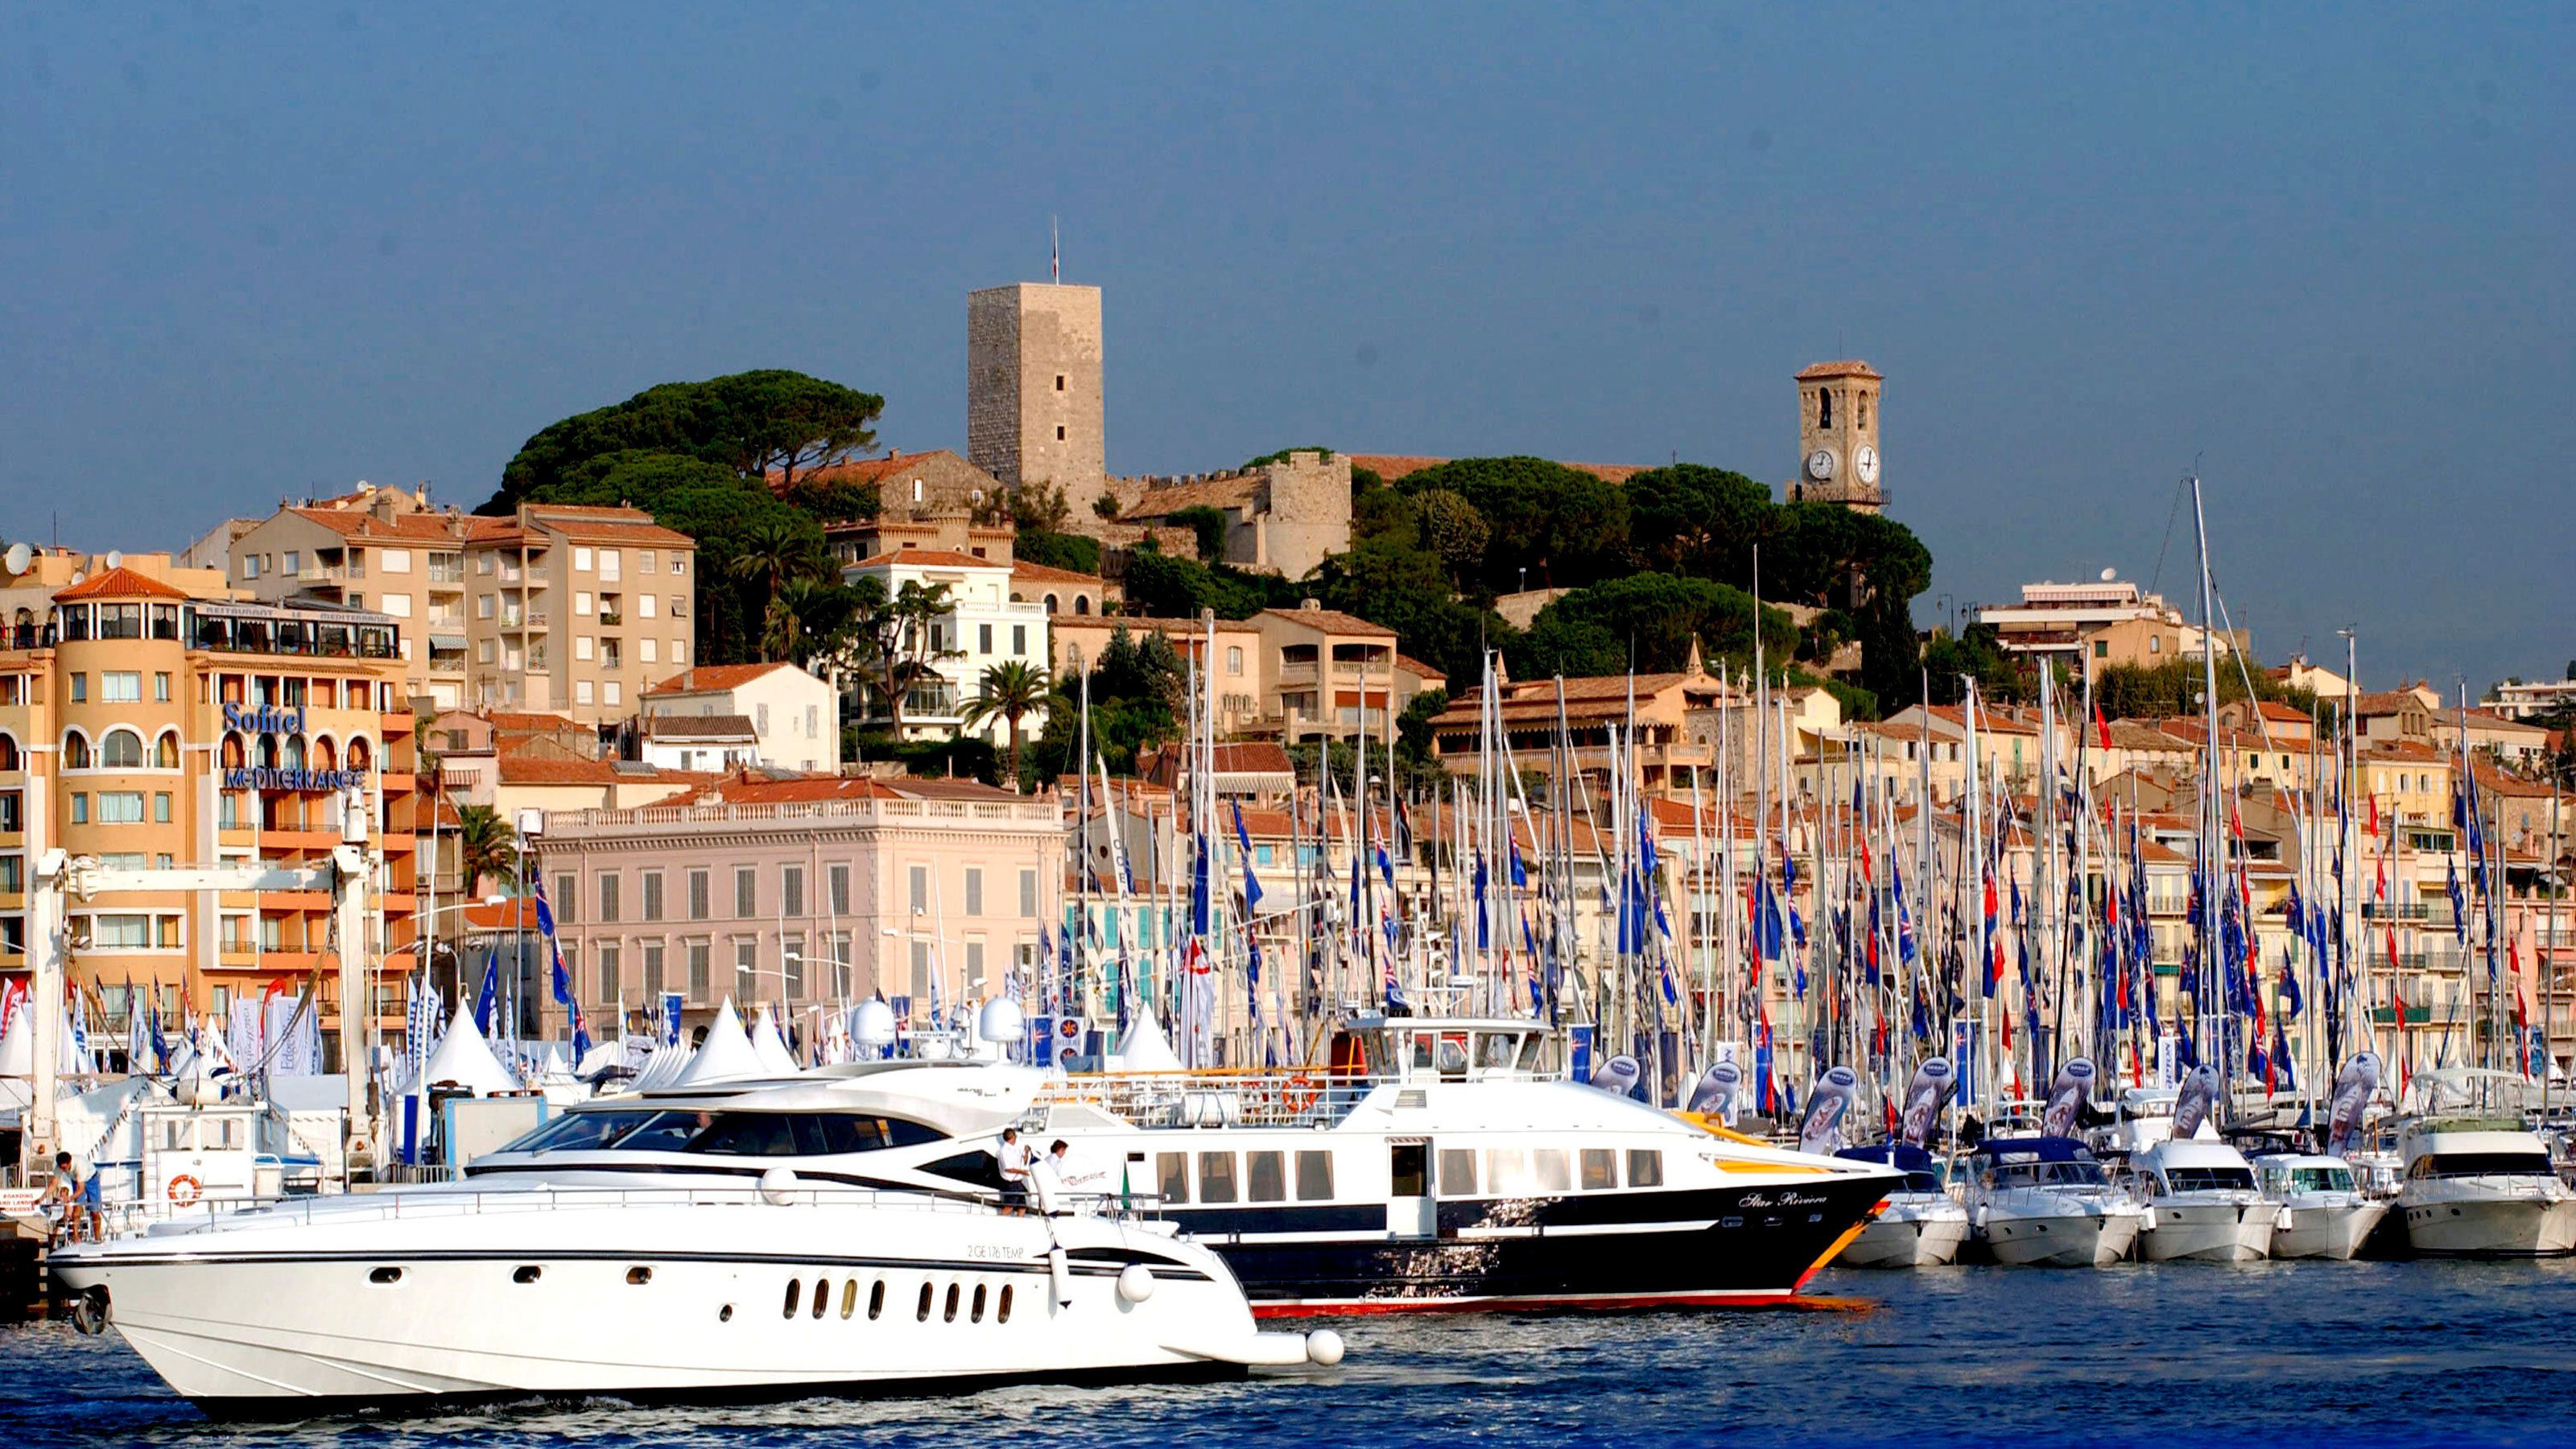 Sailboats on the water in Cannes